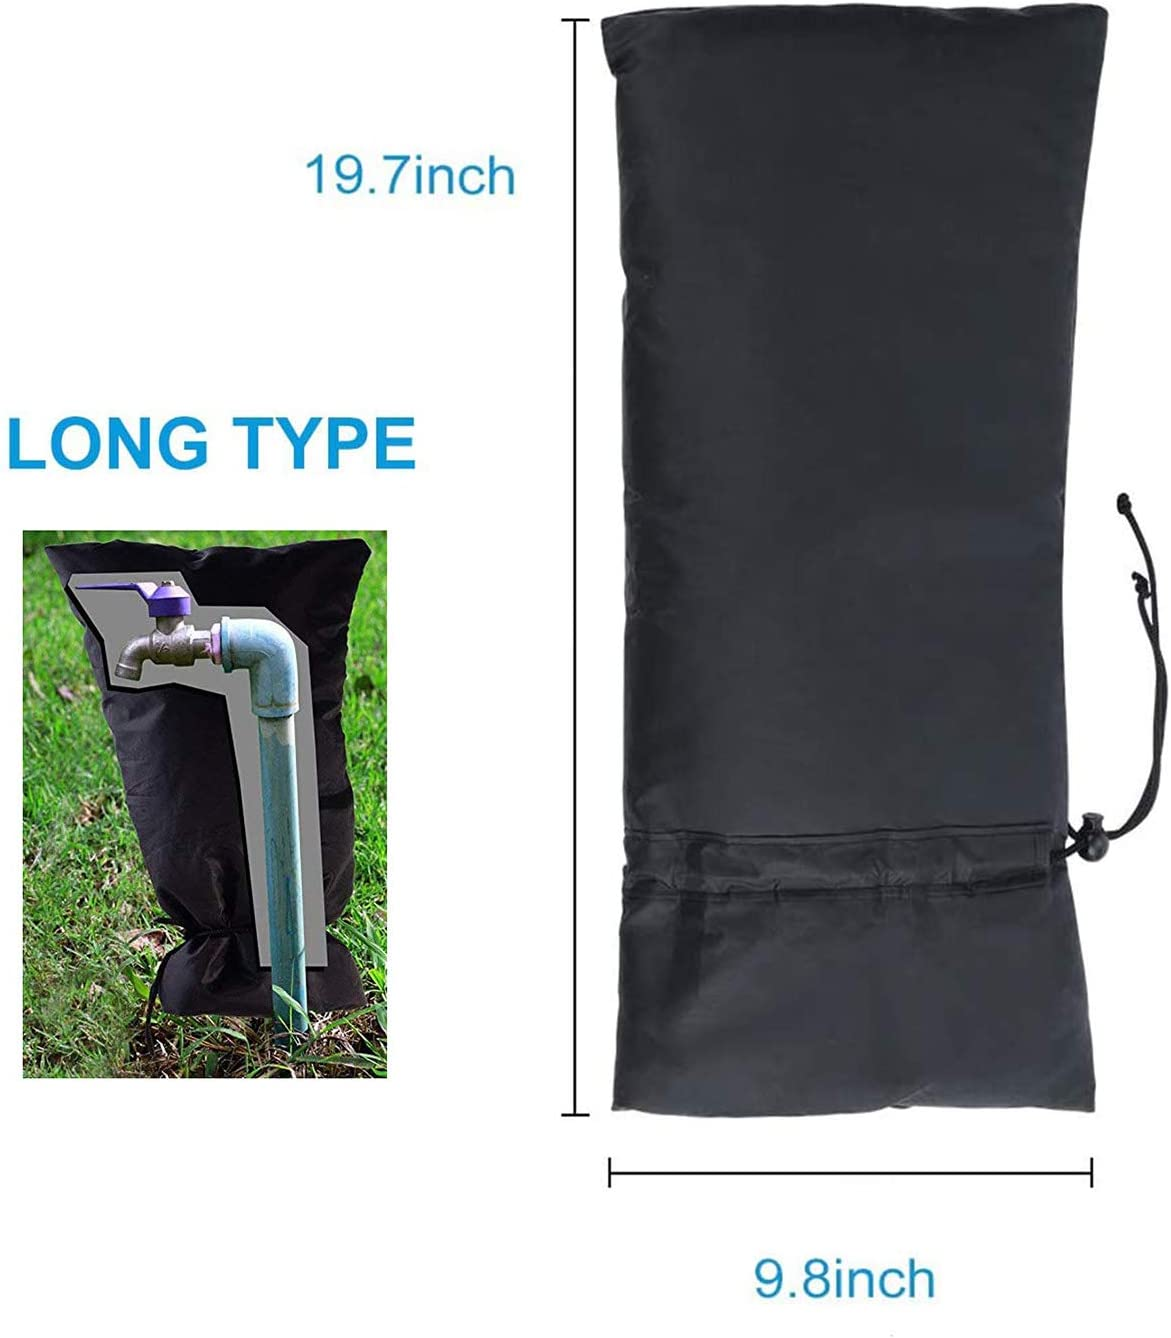 Topways Outside Long Tap Cover Faucet Jacket Protector Tap Large Size Protector From Frost for The Winter Garden Outdoor Tap Cover From Freezing Waterproof Thermal Tap Jacket